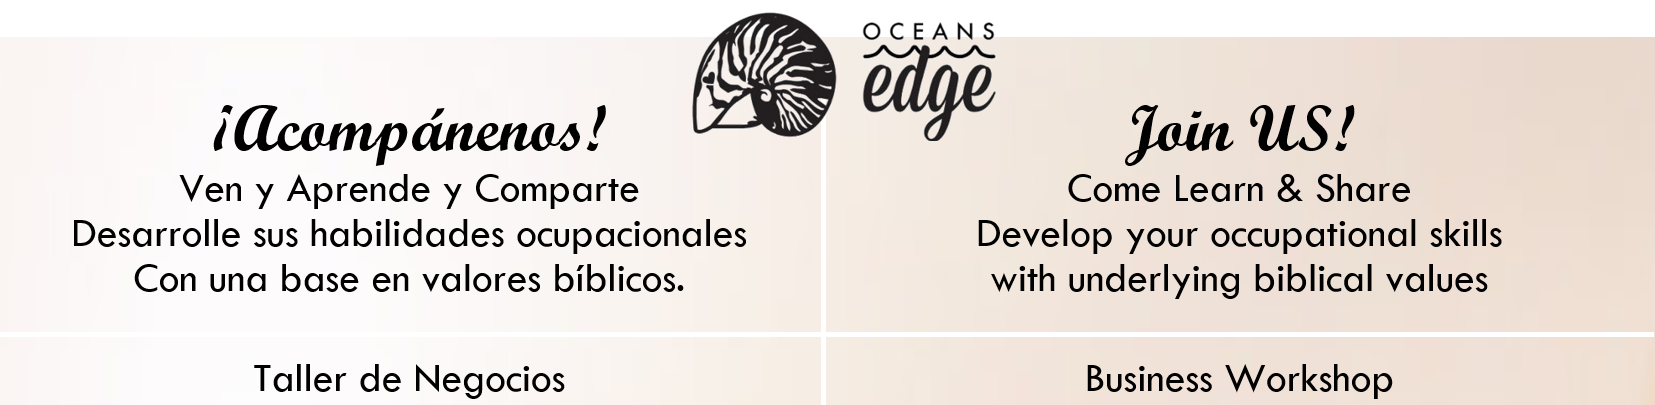 Oceans Edge Jaco beach Taller de negocios business workshop